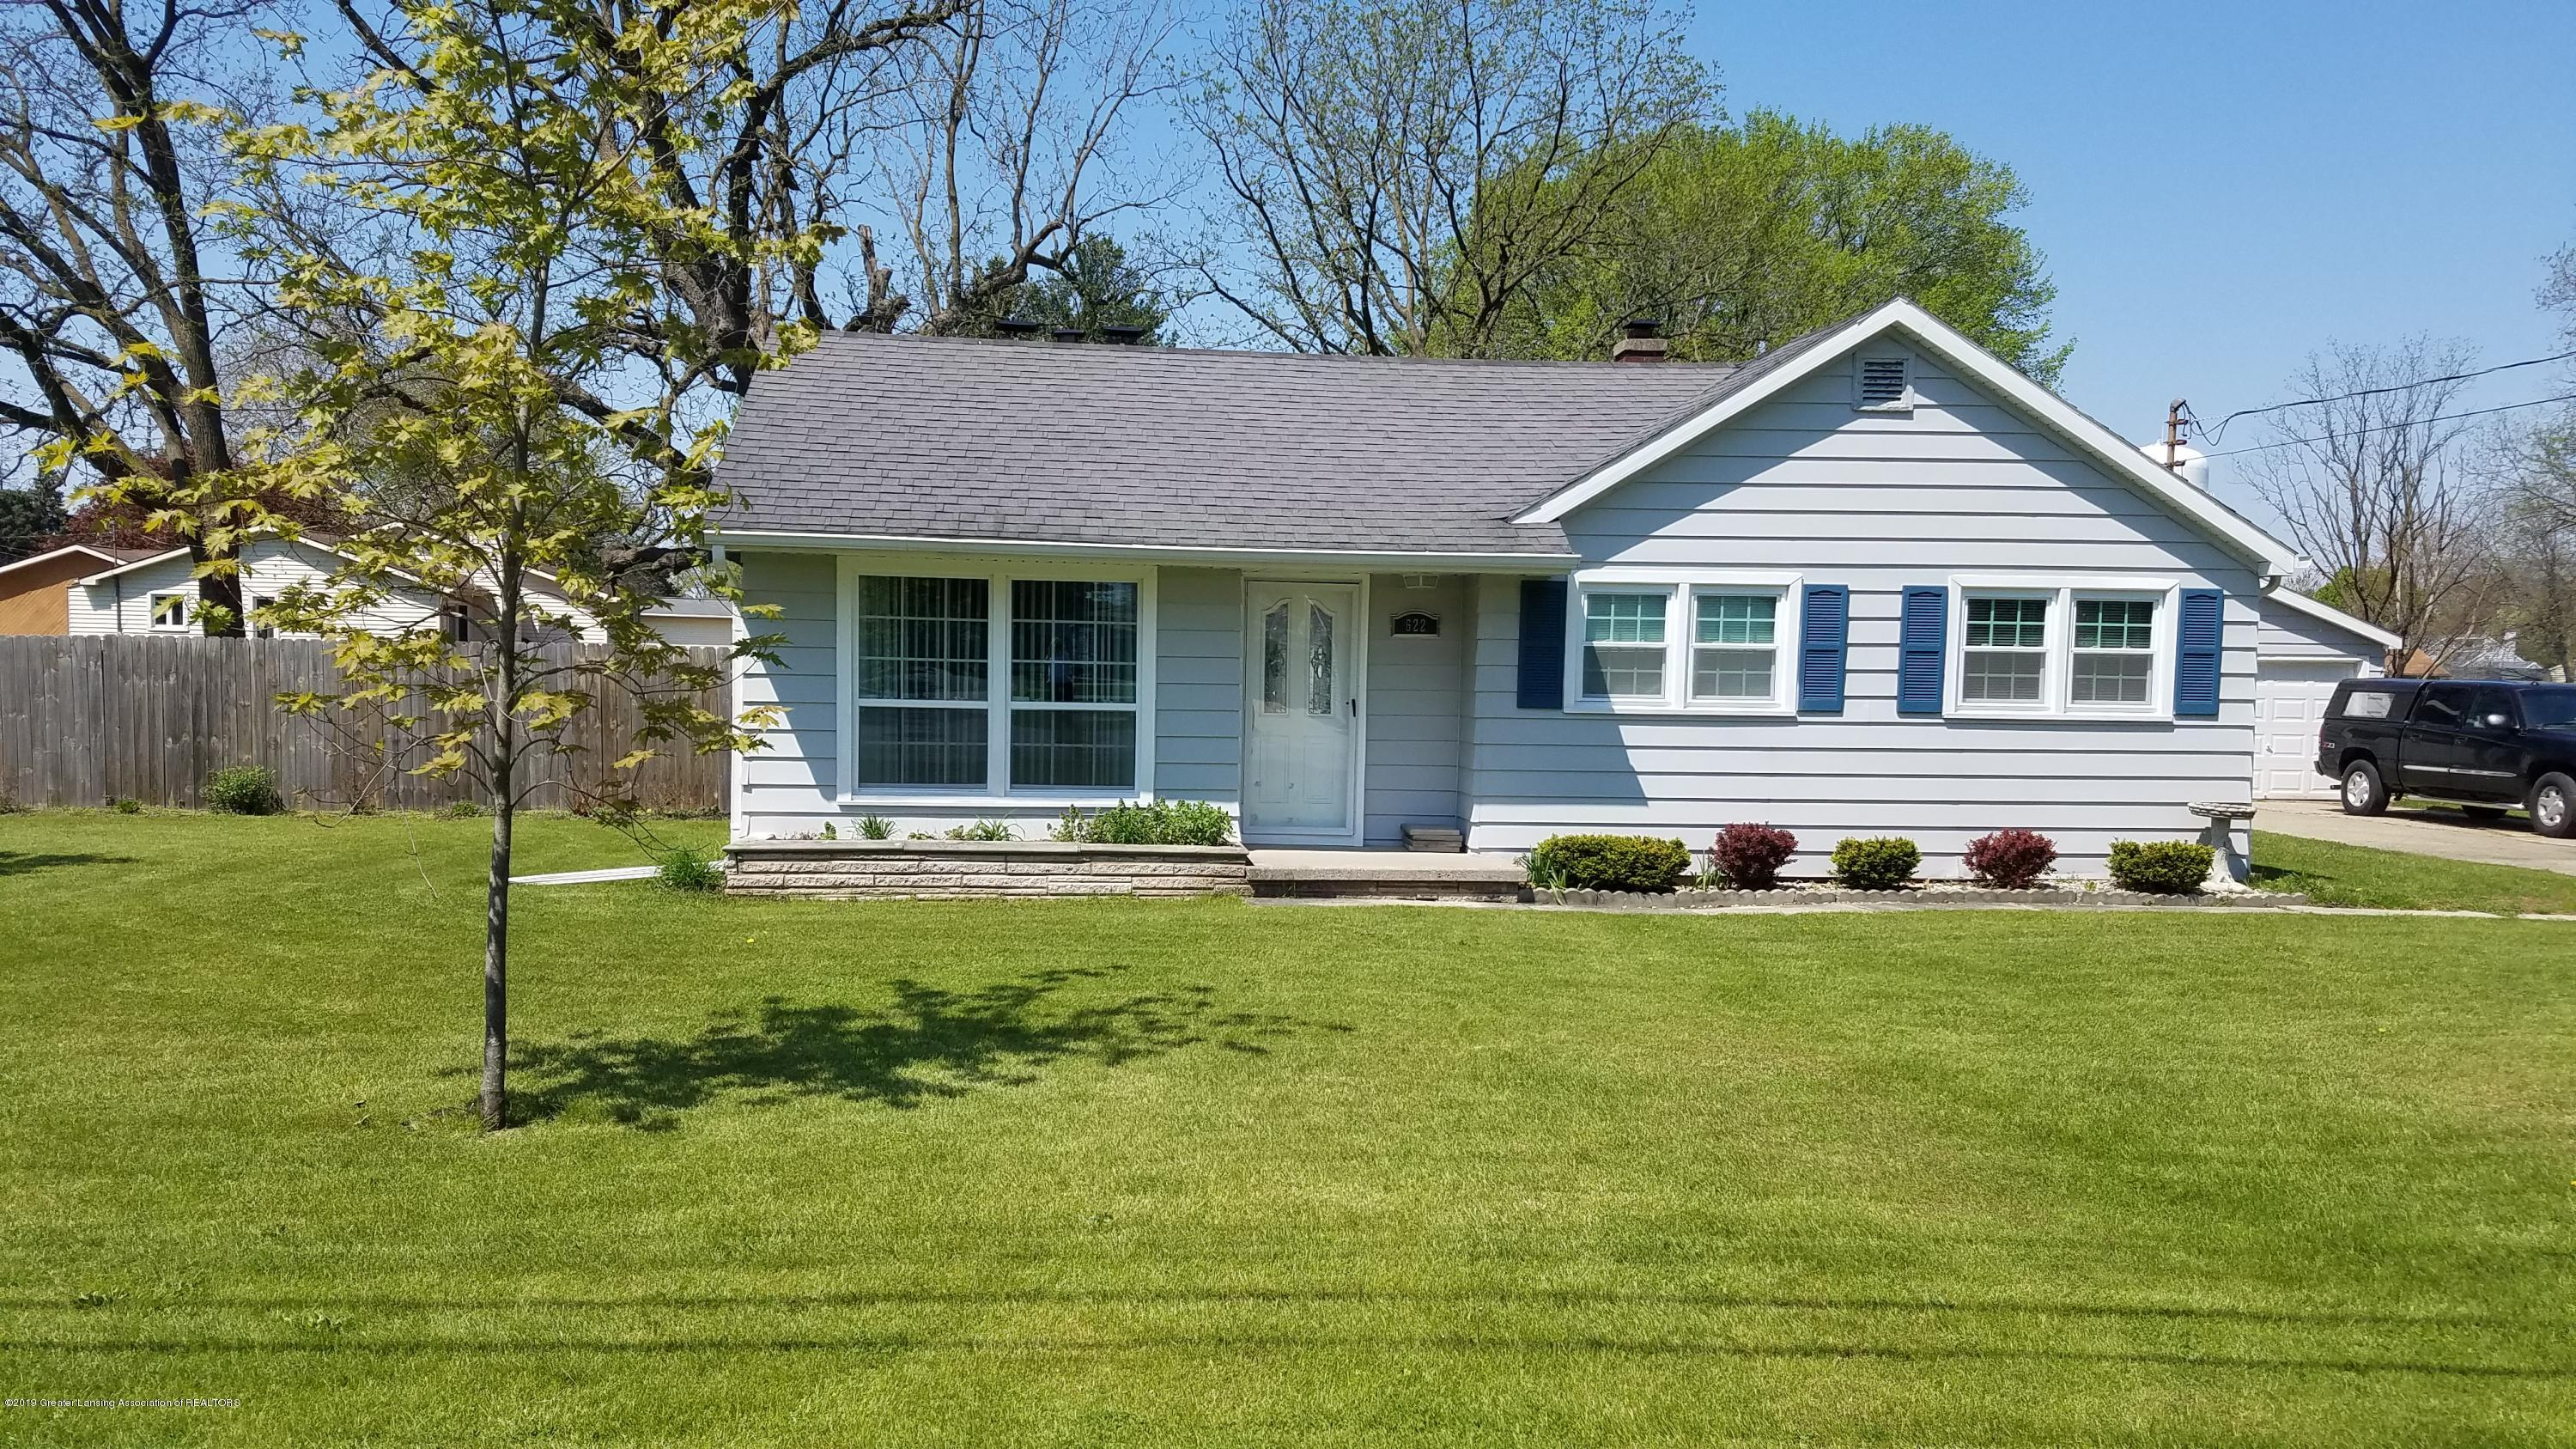 622 Stoll Rd - 20190515_120136 - 1